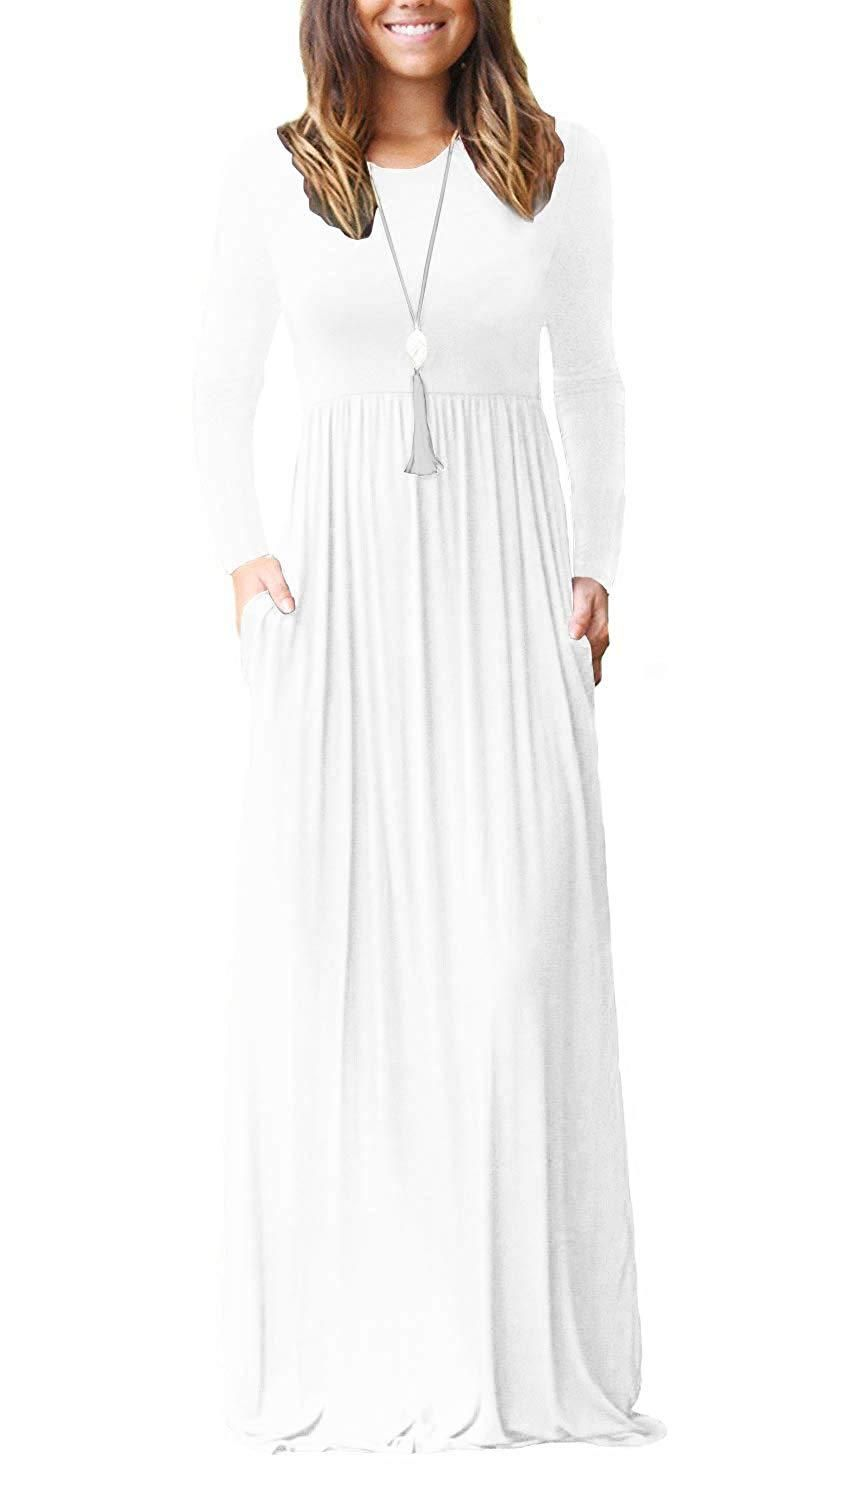 5bc7519fe1 Viishow Women s Long Sleeve Loose Plain Maxi Dresses Casual Long Dresses  with Pockets